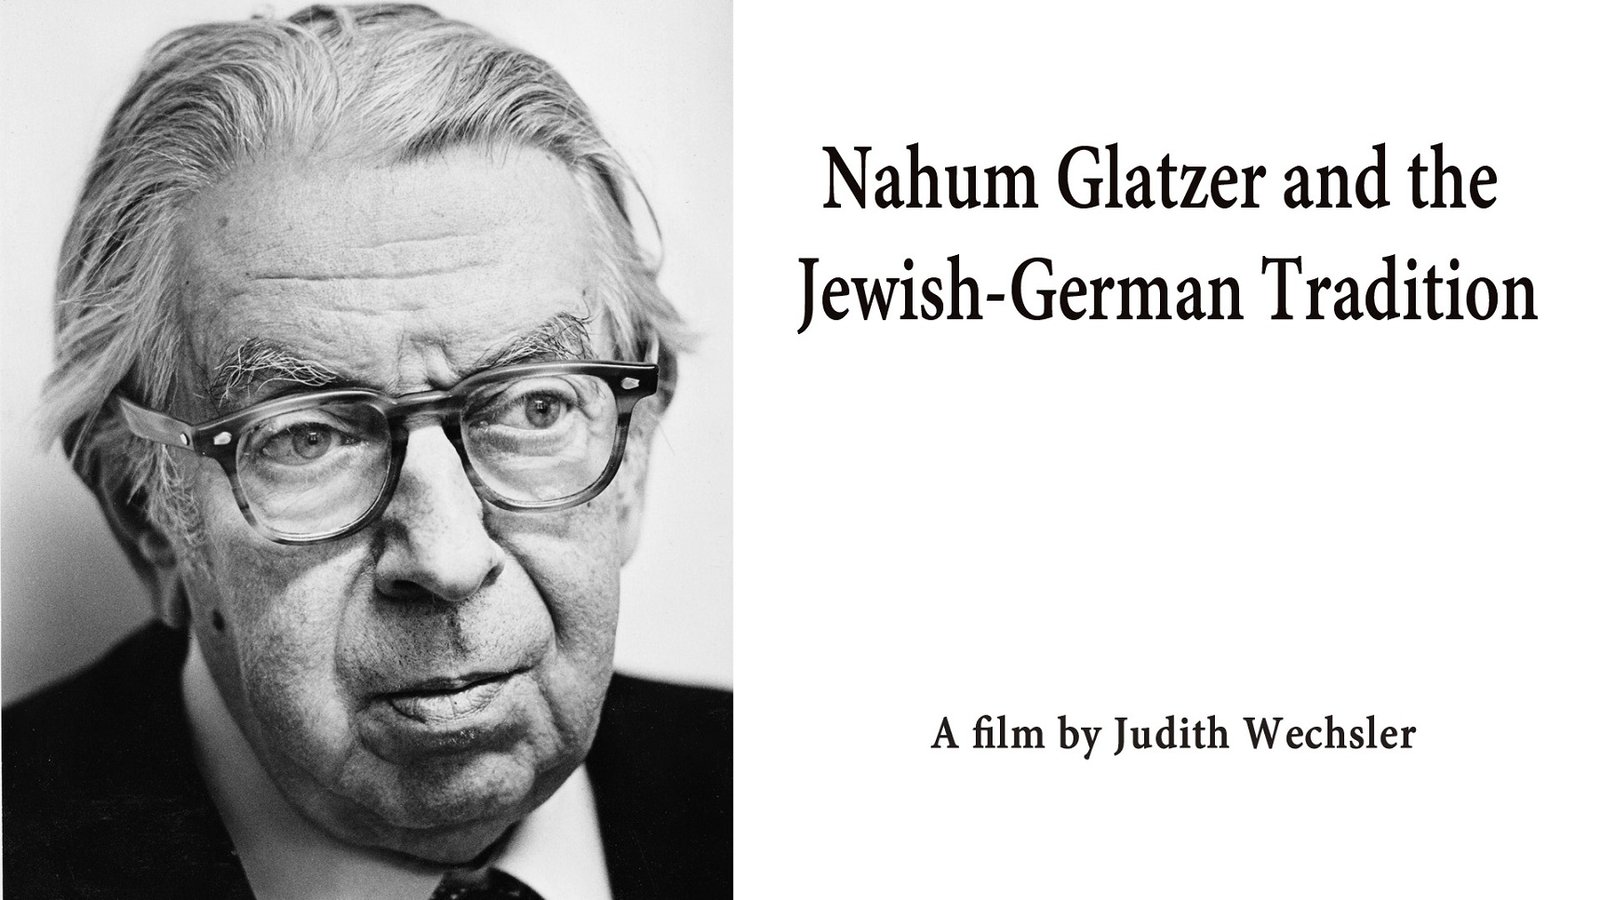 Nahum Glatzer and the German-Jewish Tradition - The Life and Work of a Judaic Scholar